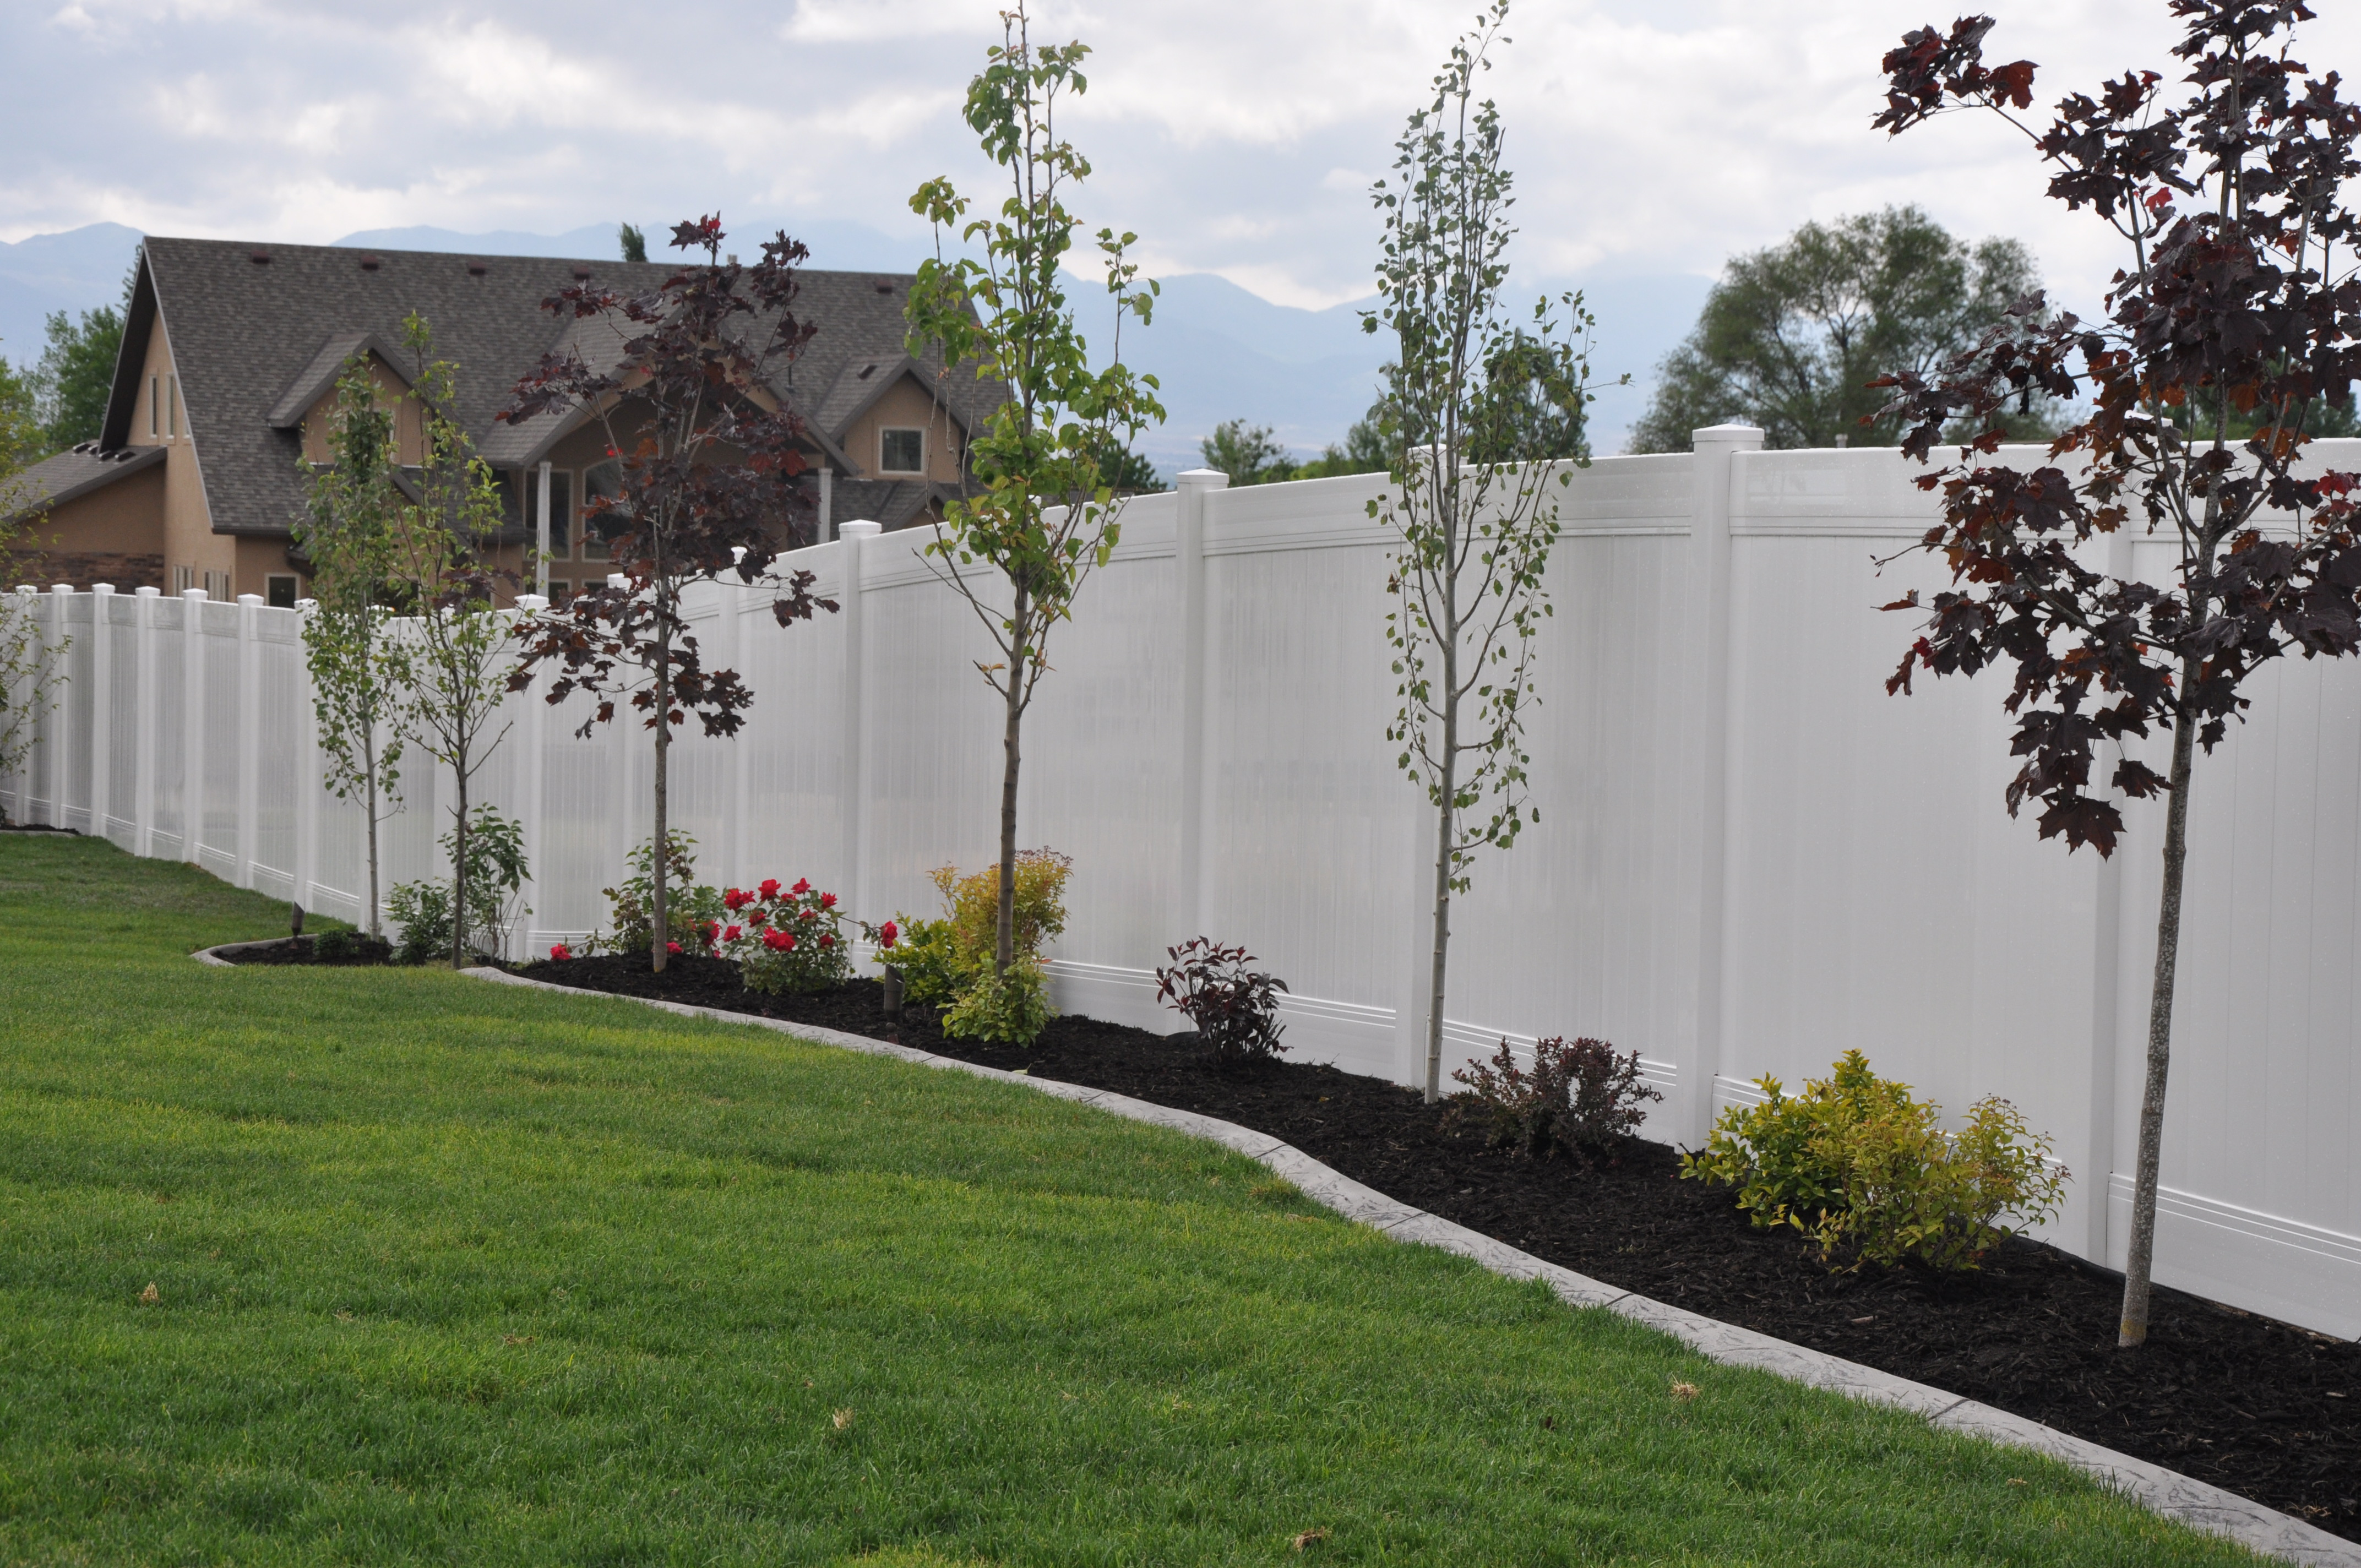 Blog vinyl fence experts part 2 call now and take advantage of summer pricing discounts on vinyl fencing vinyl gates and porch railing vinyl fence baanklon Choice Image